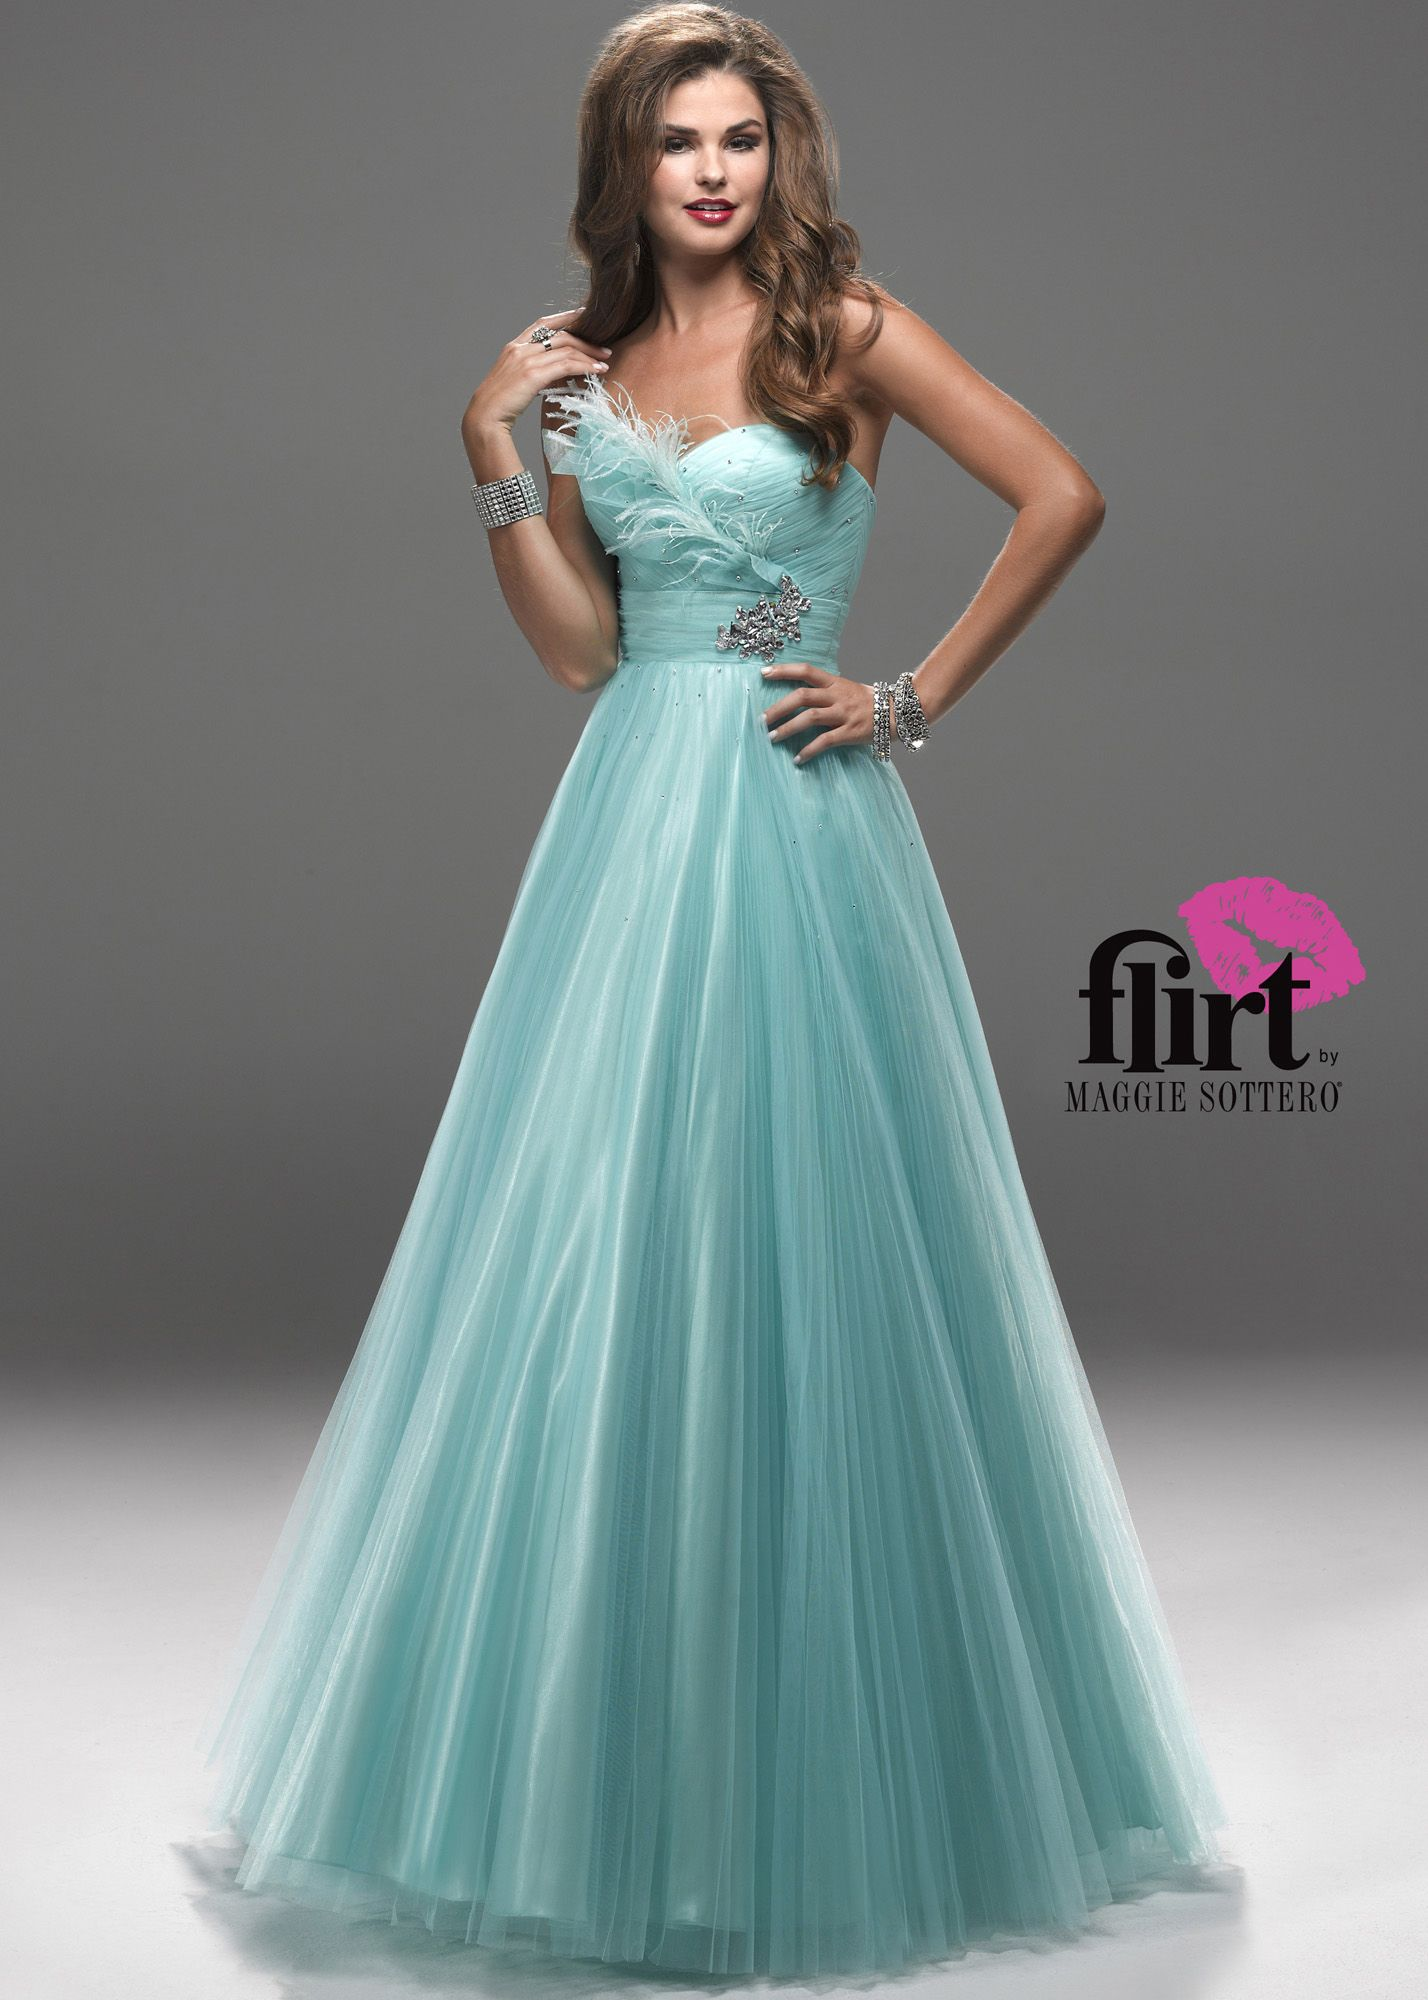 Buy now Flirt by Maggie Sottero P2728 green strapless ball gown ...